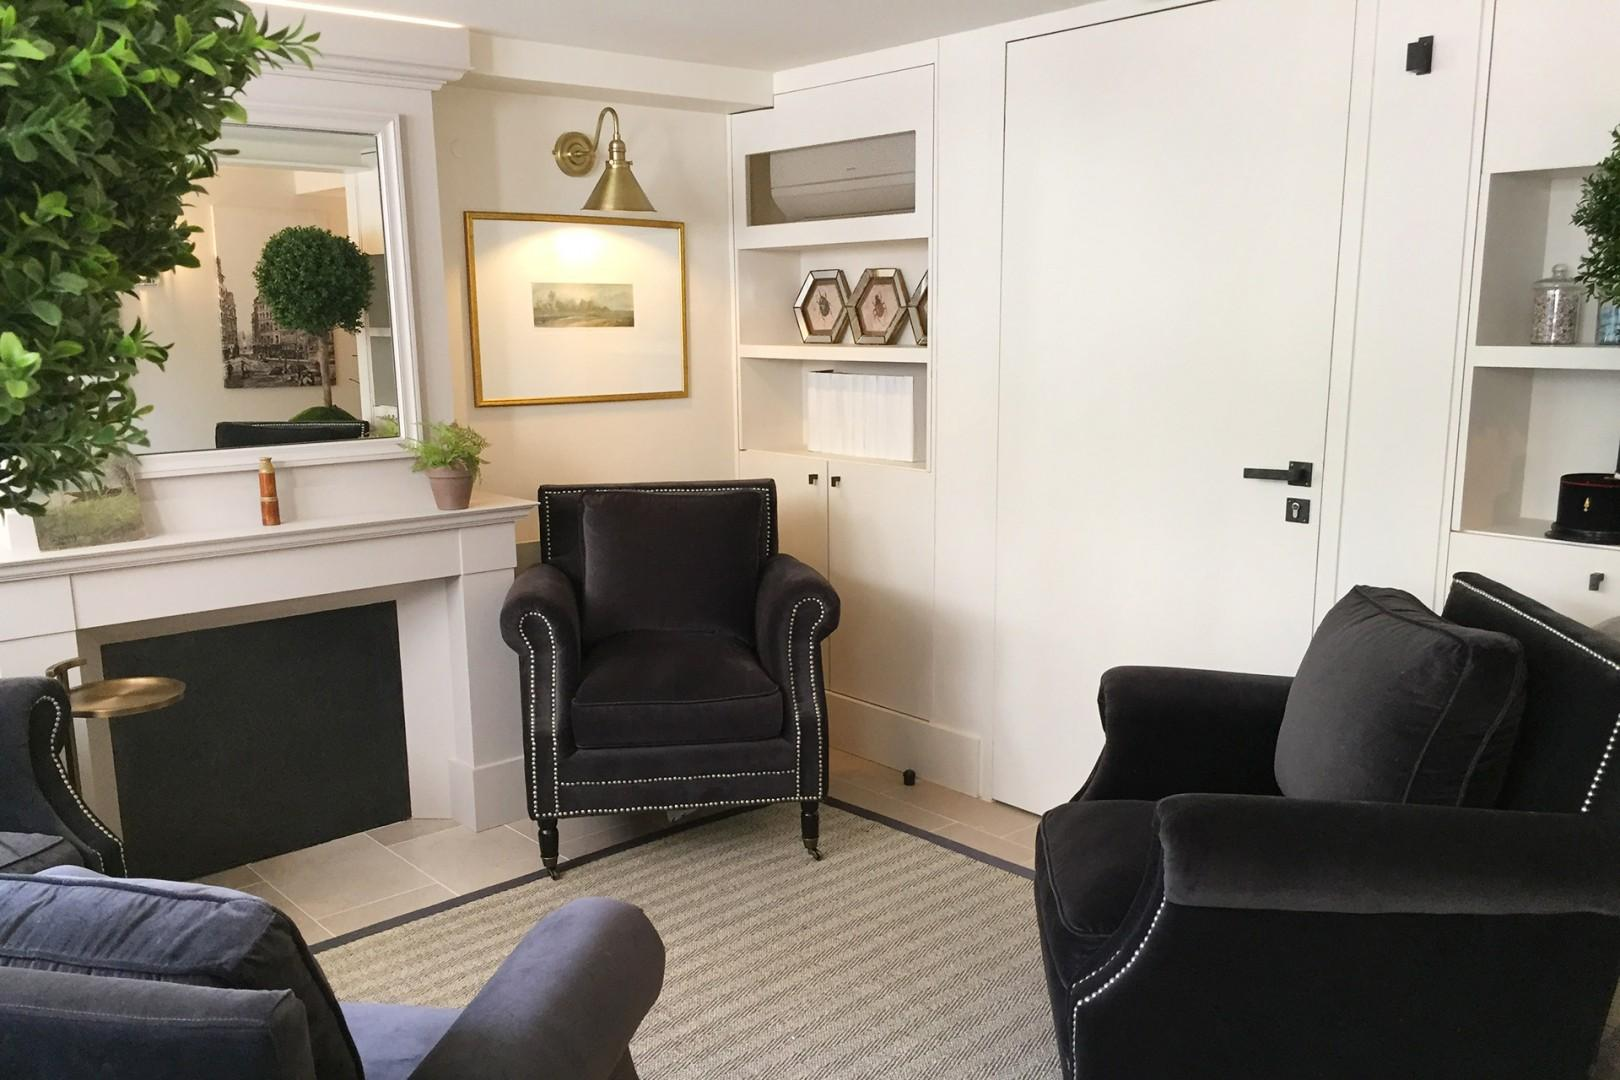 Enjoy the comforts of the armchairs in the lobby.